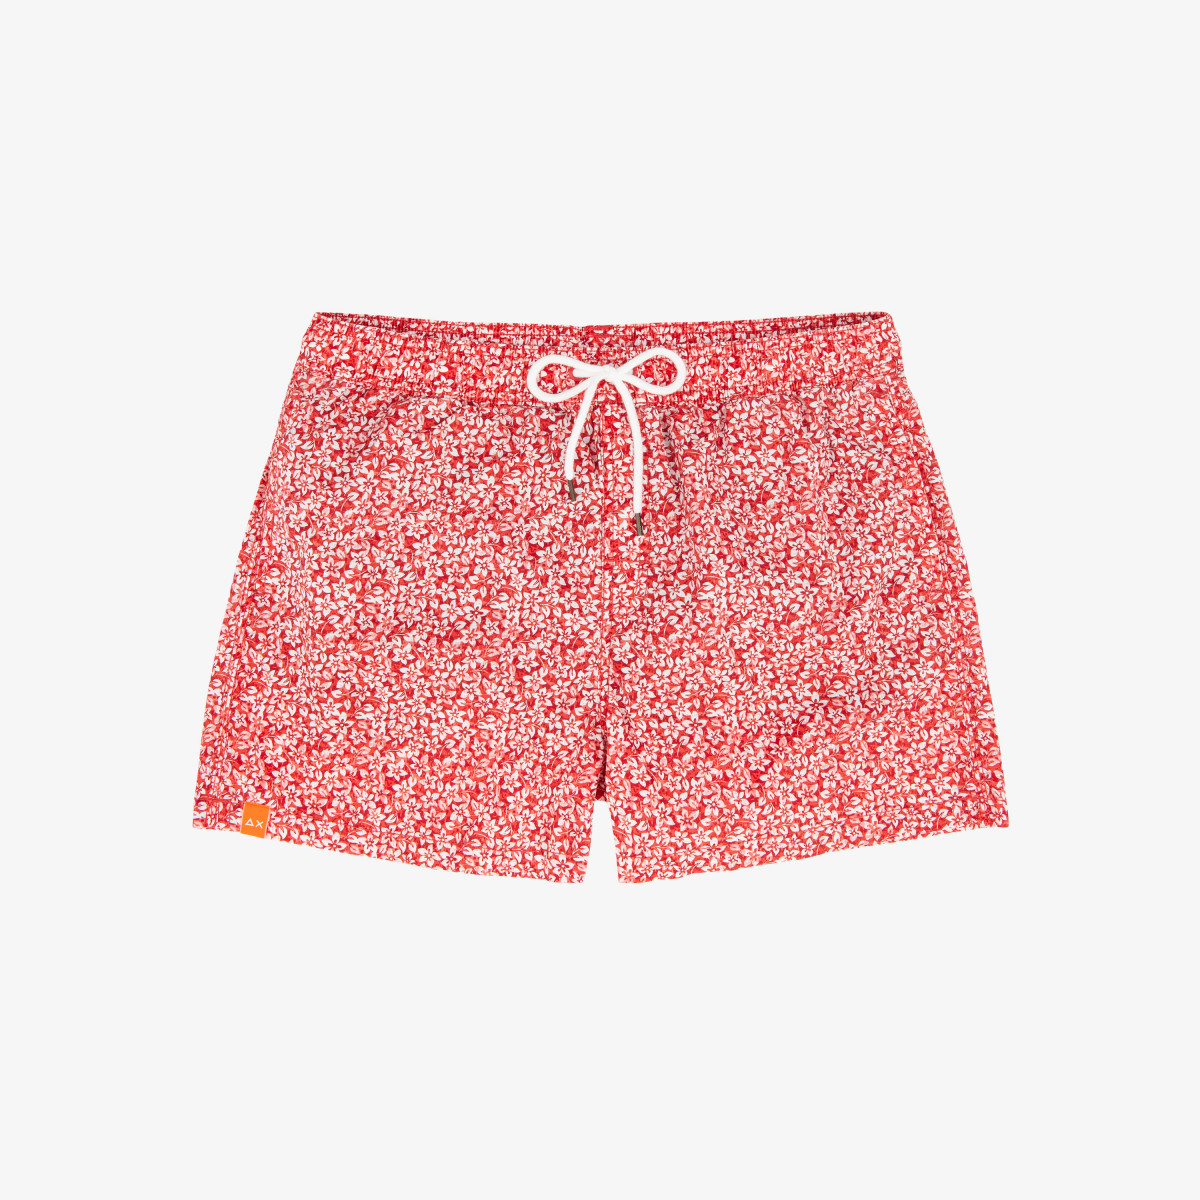 SWIM PANT MICRO PRINT RED/WHITE